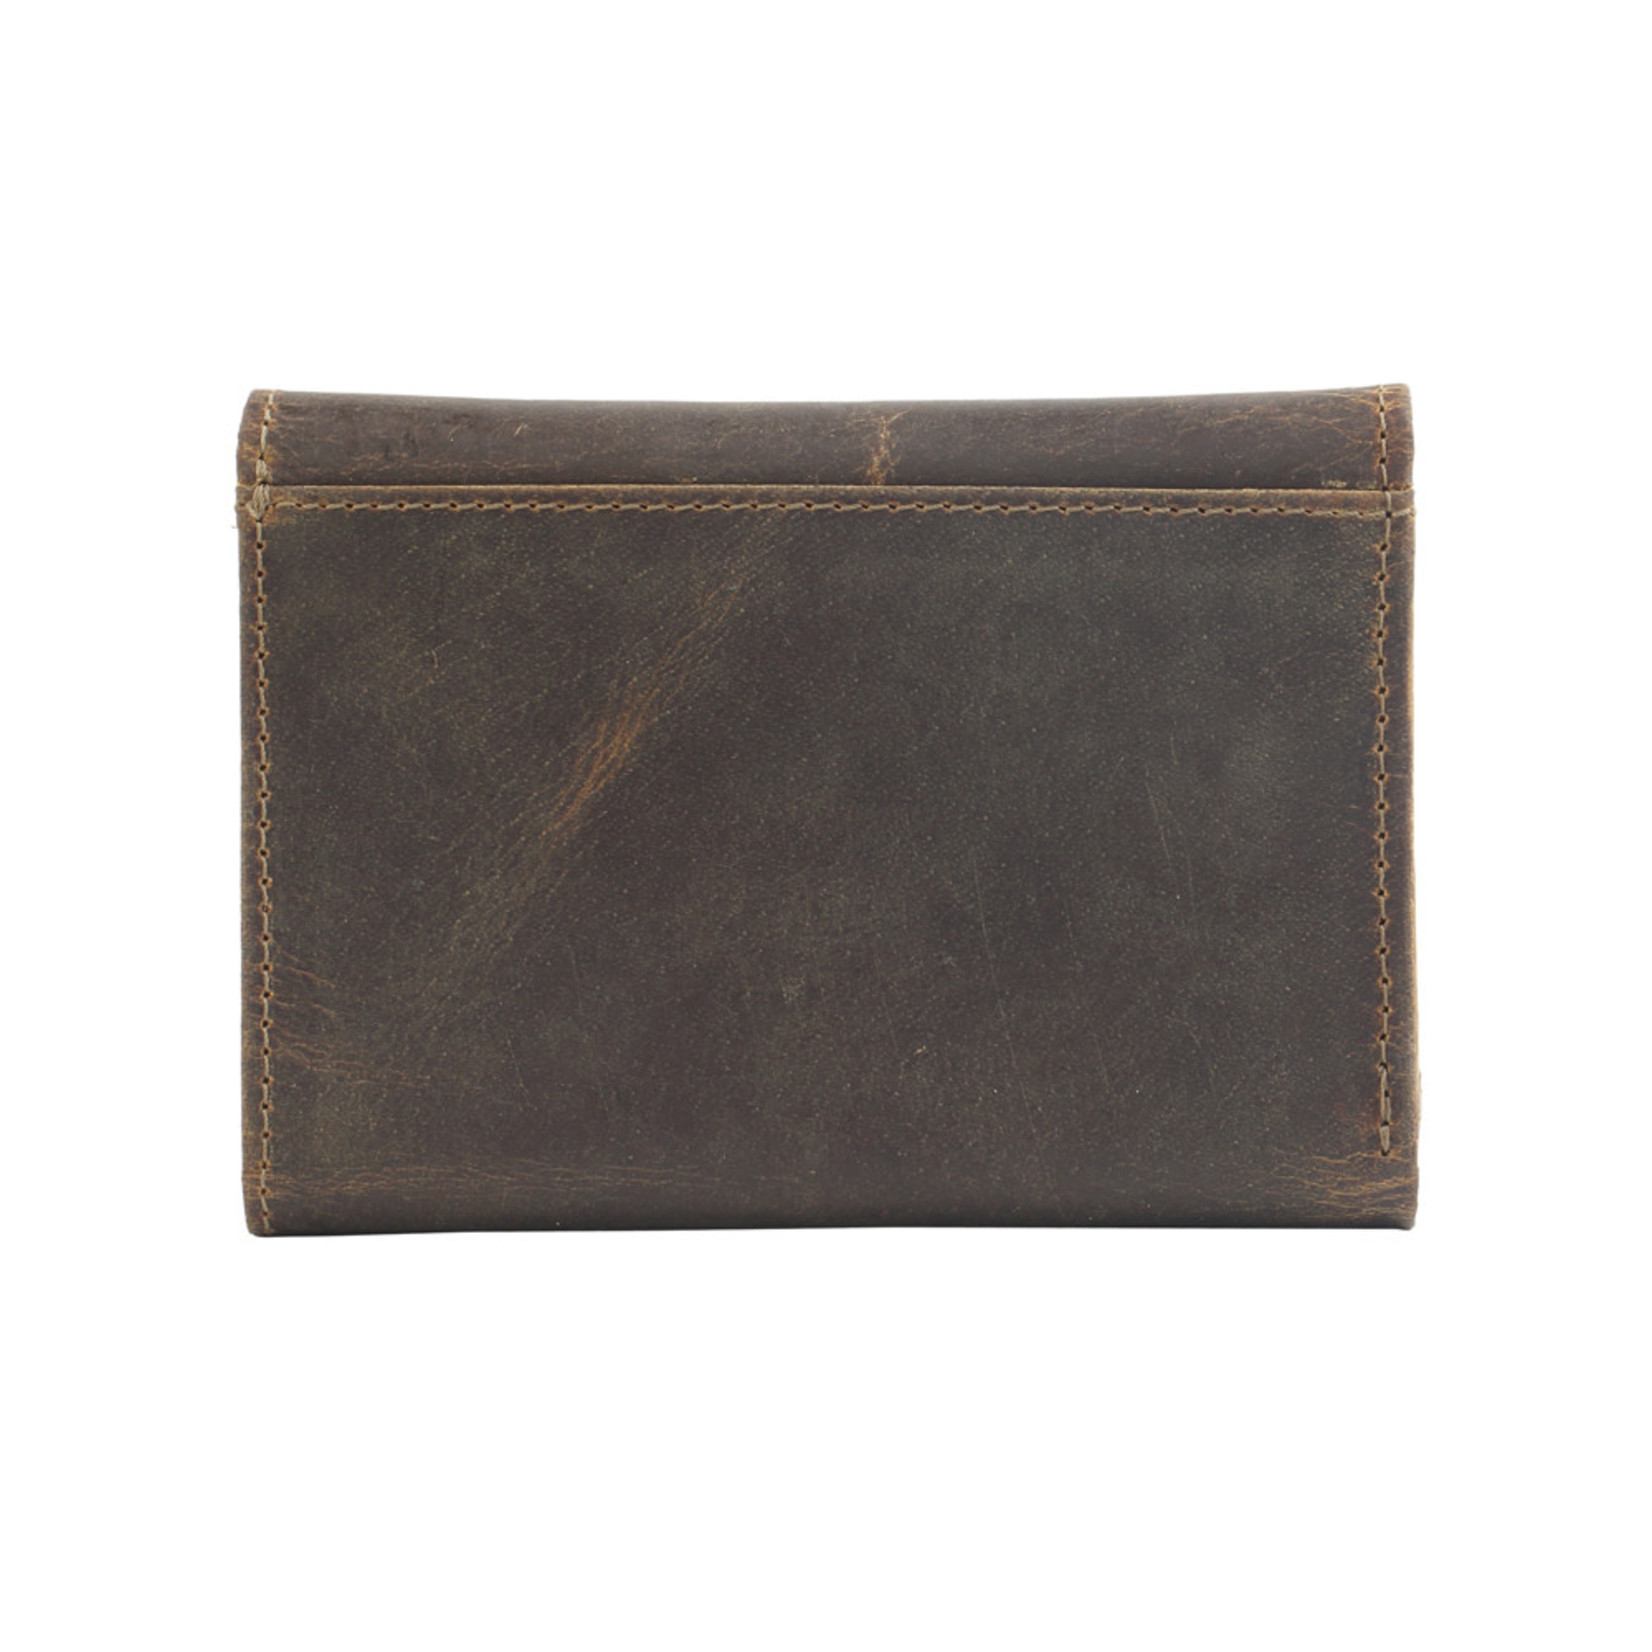 Myra Bags S-2676 Out of the Woods Leather Wallet